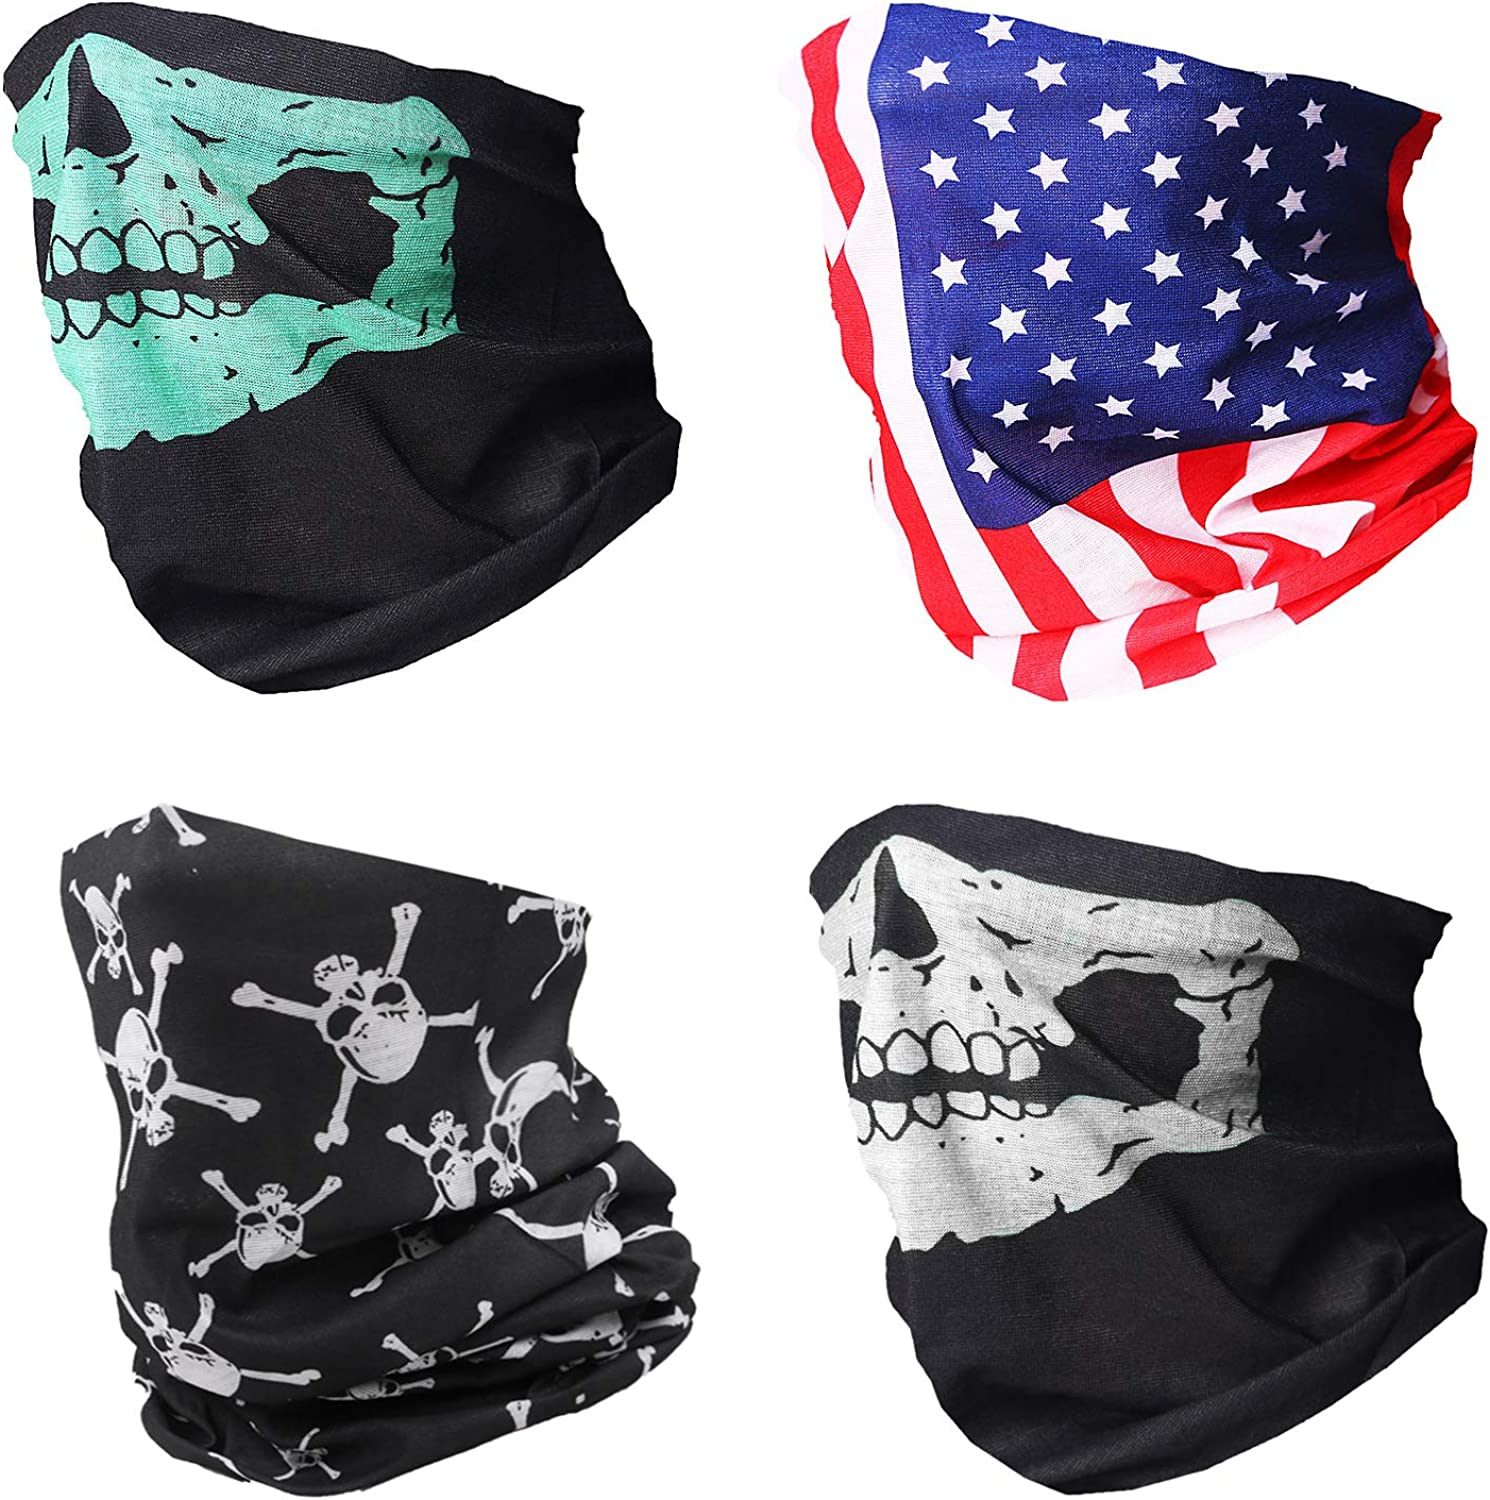 TRAILSIDE SUPPLY CO. 4-Pack Seamless Face Mask/Mouth Cover/Bandanas/Neck Gaiters